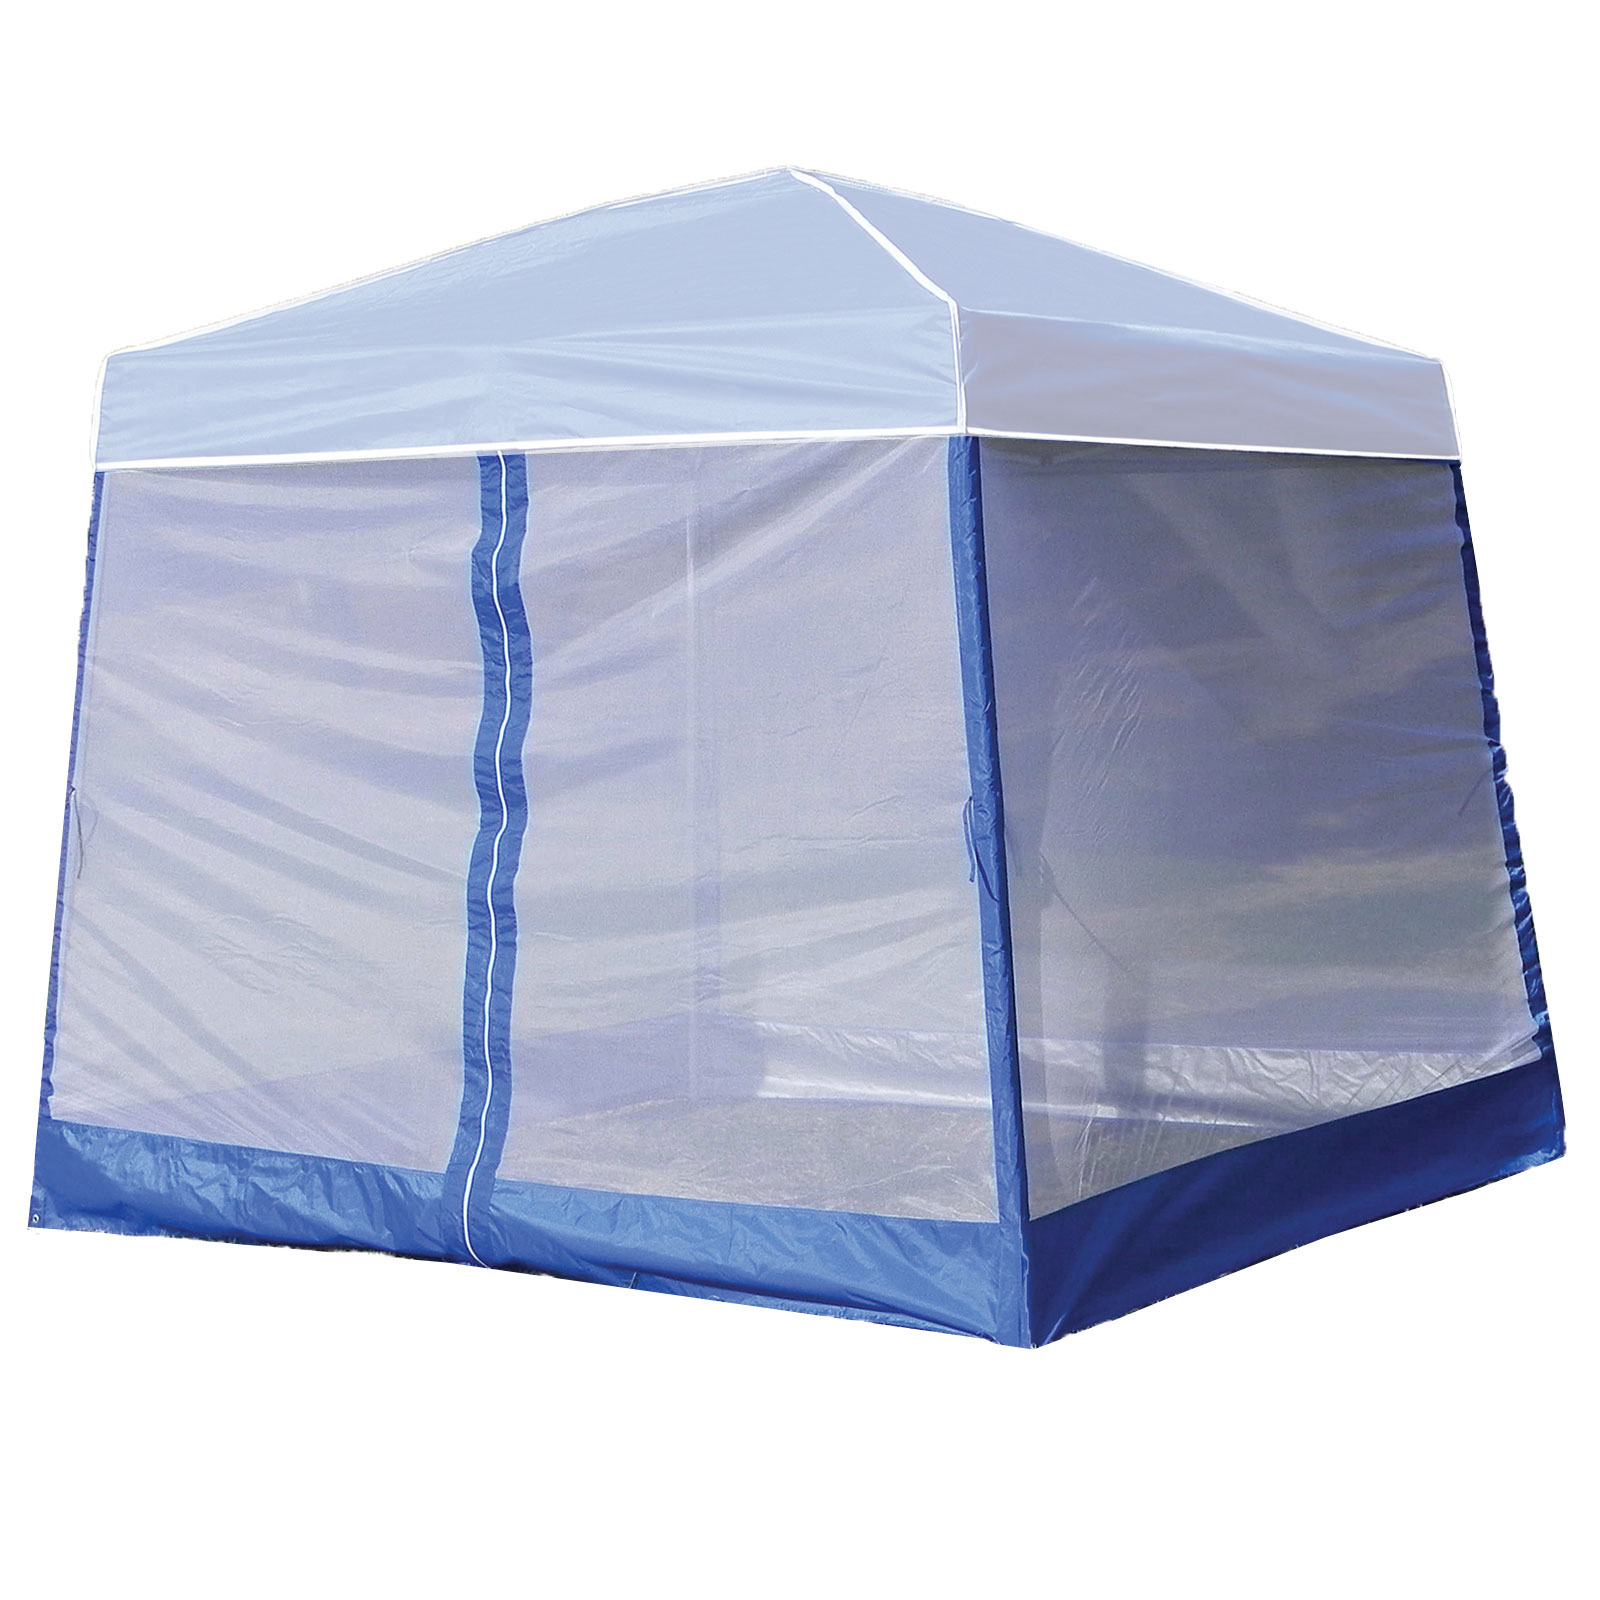 Z-Shade 10 Foot Angled Leg Screenroom Patio Shelter, Blue (Canopy Not Included) by Z-Shade